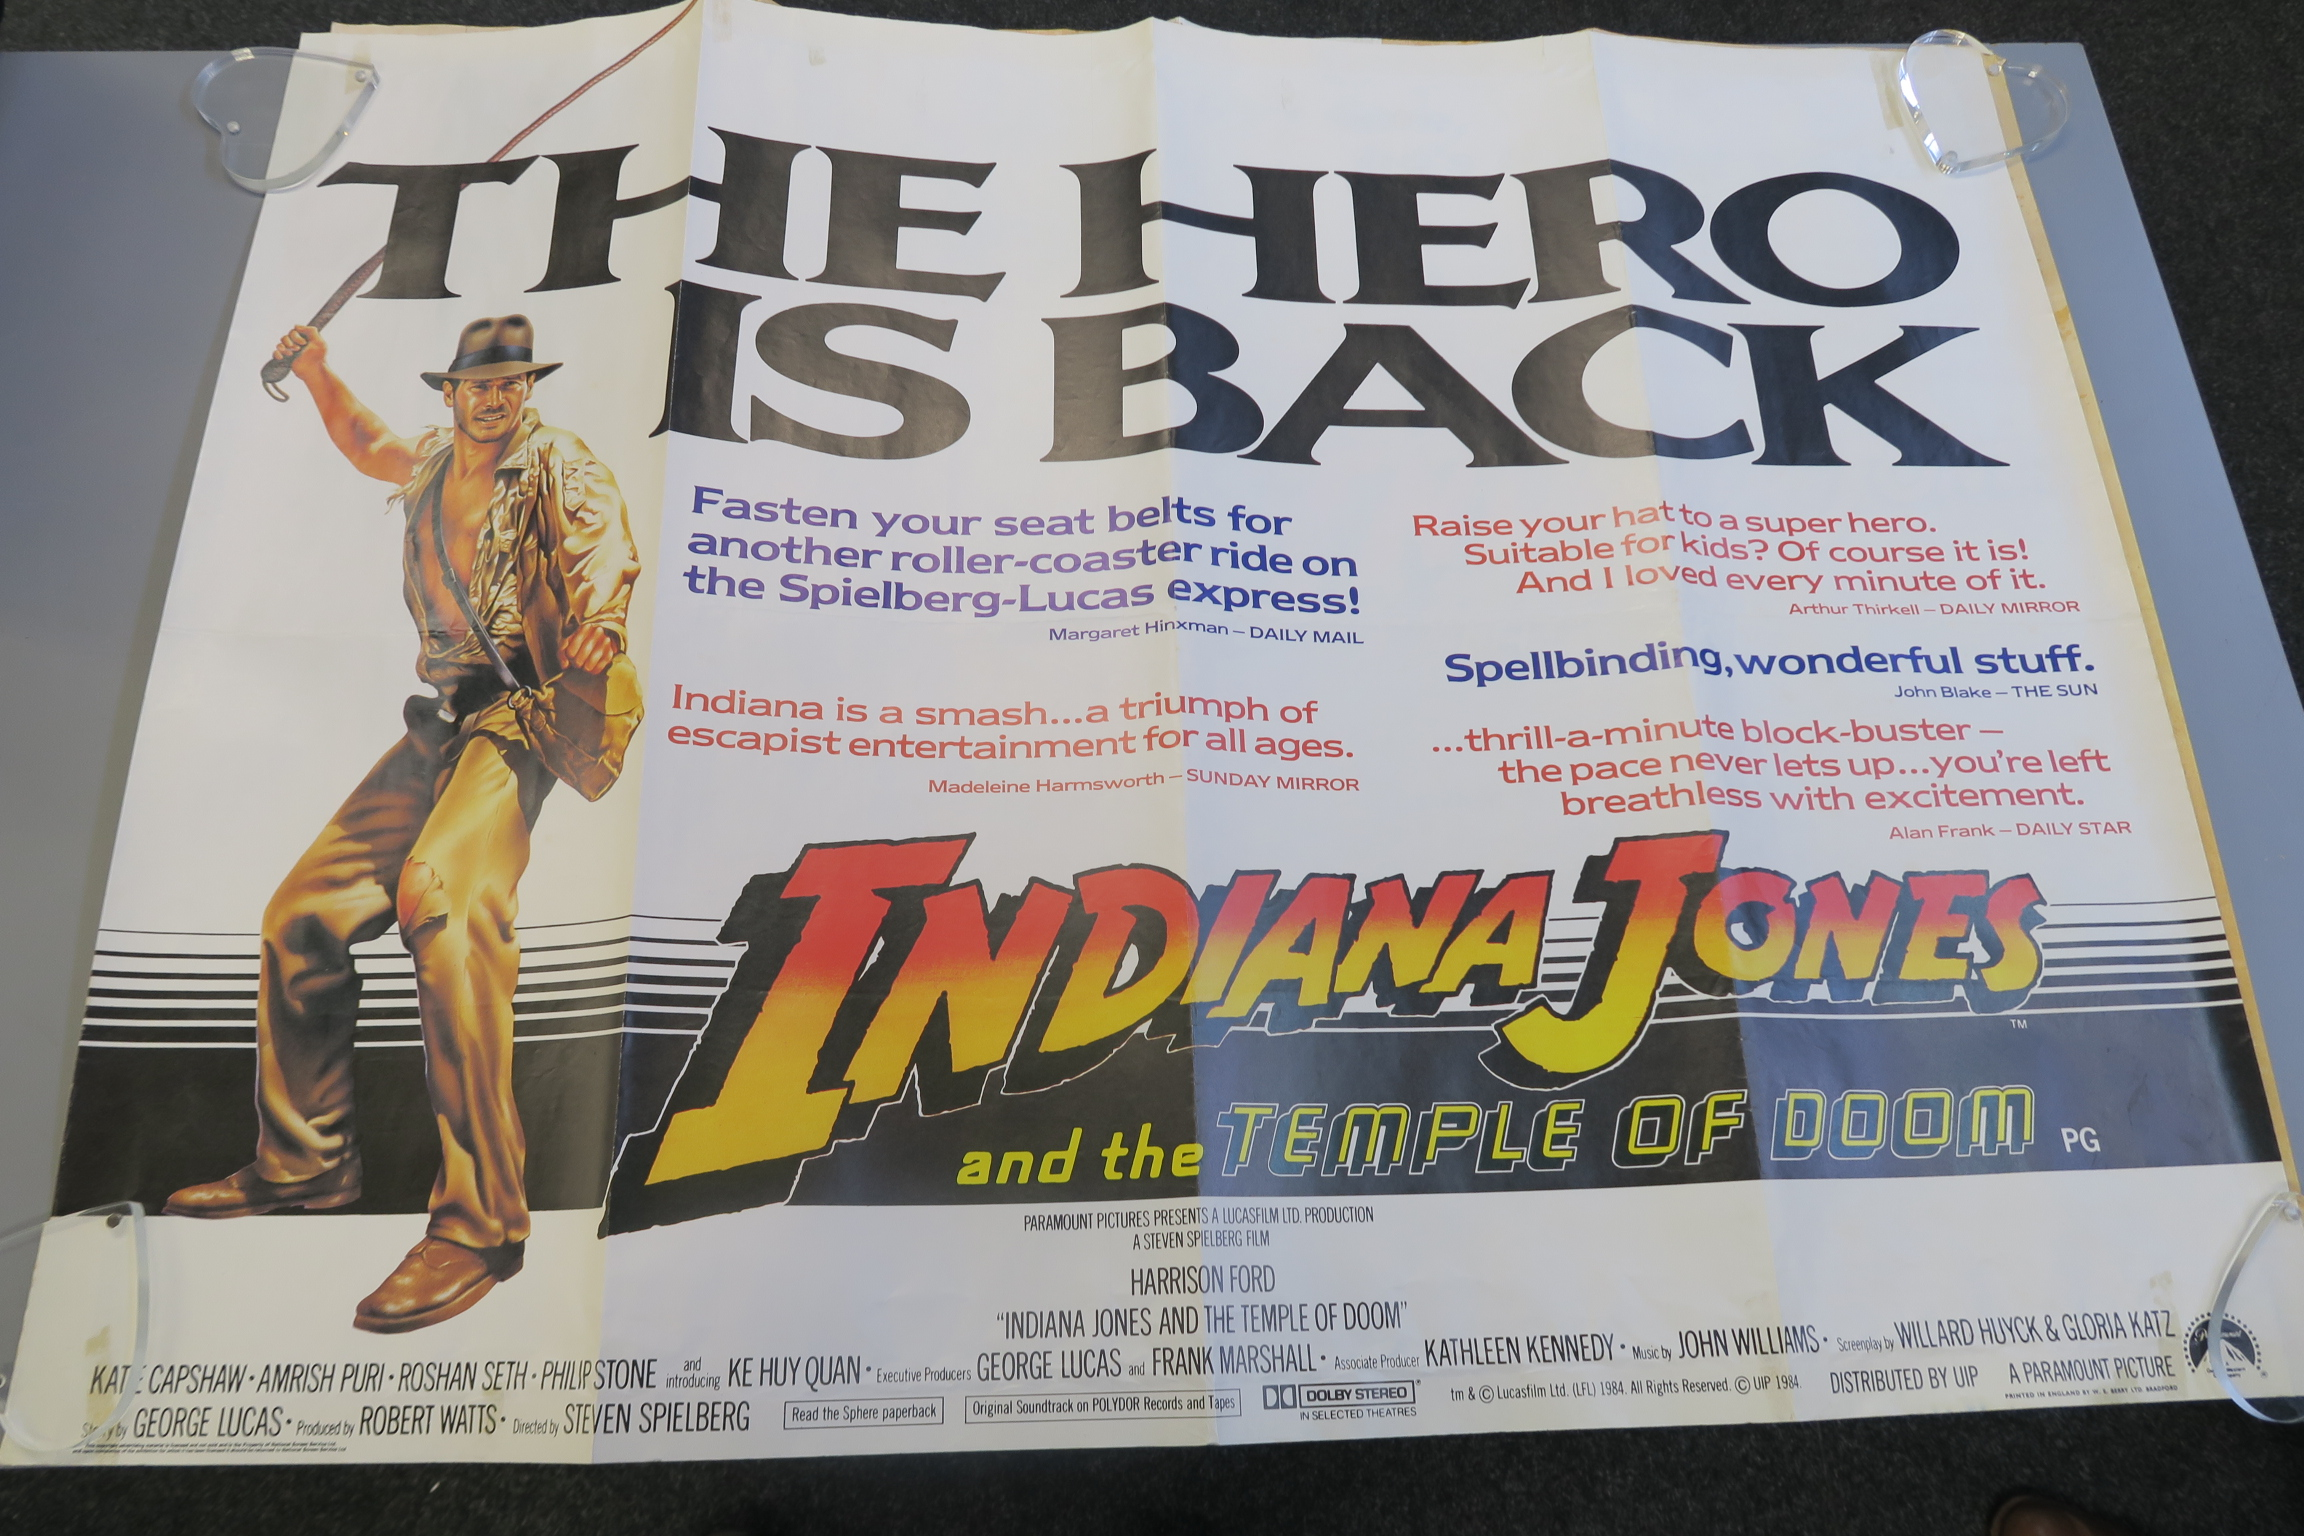 Lot 99B - Indiana Jones and the Last crusade British Quad film poster with Indiana Jones and the Temple of